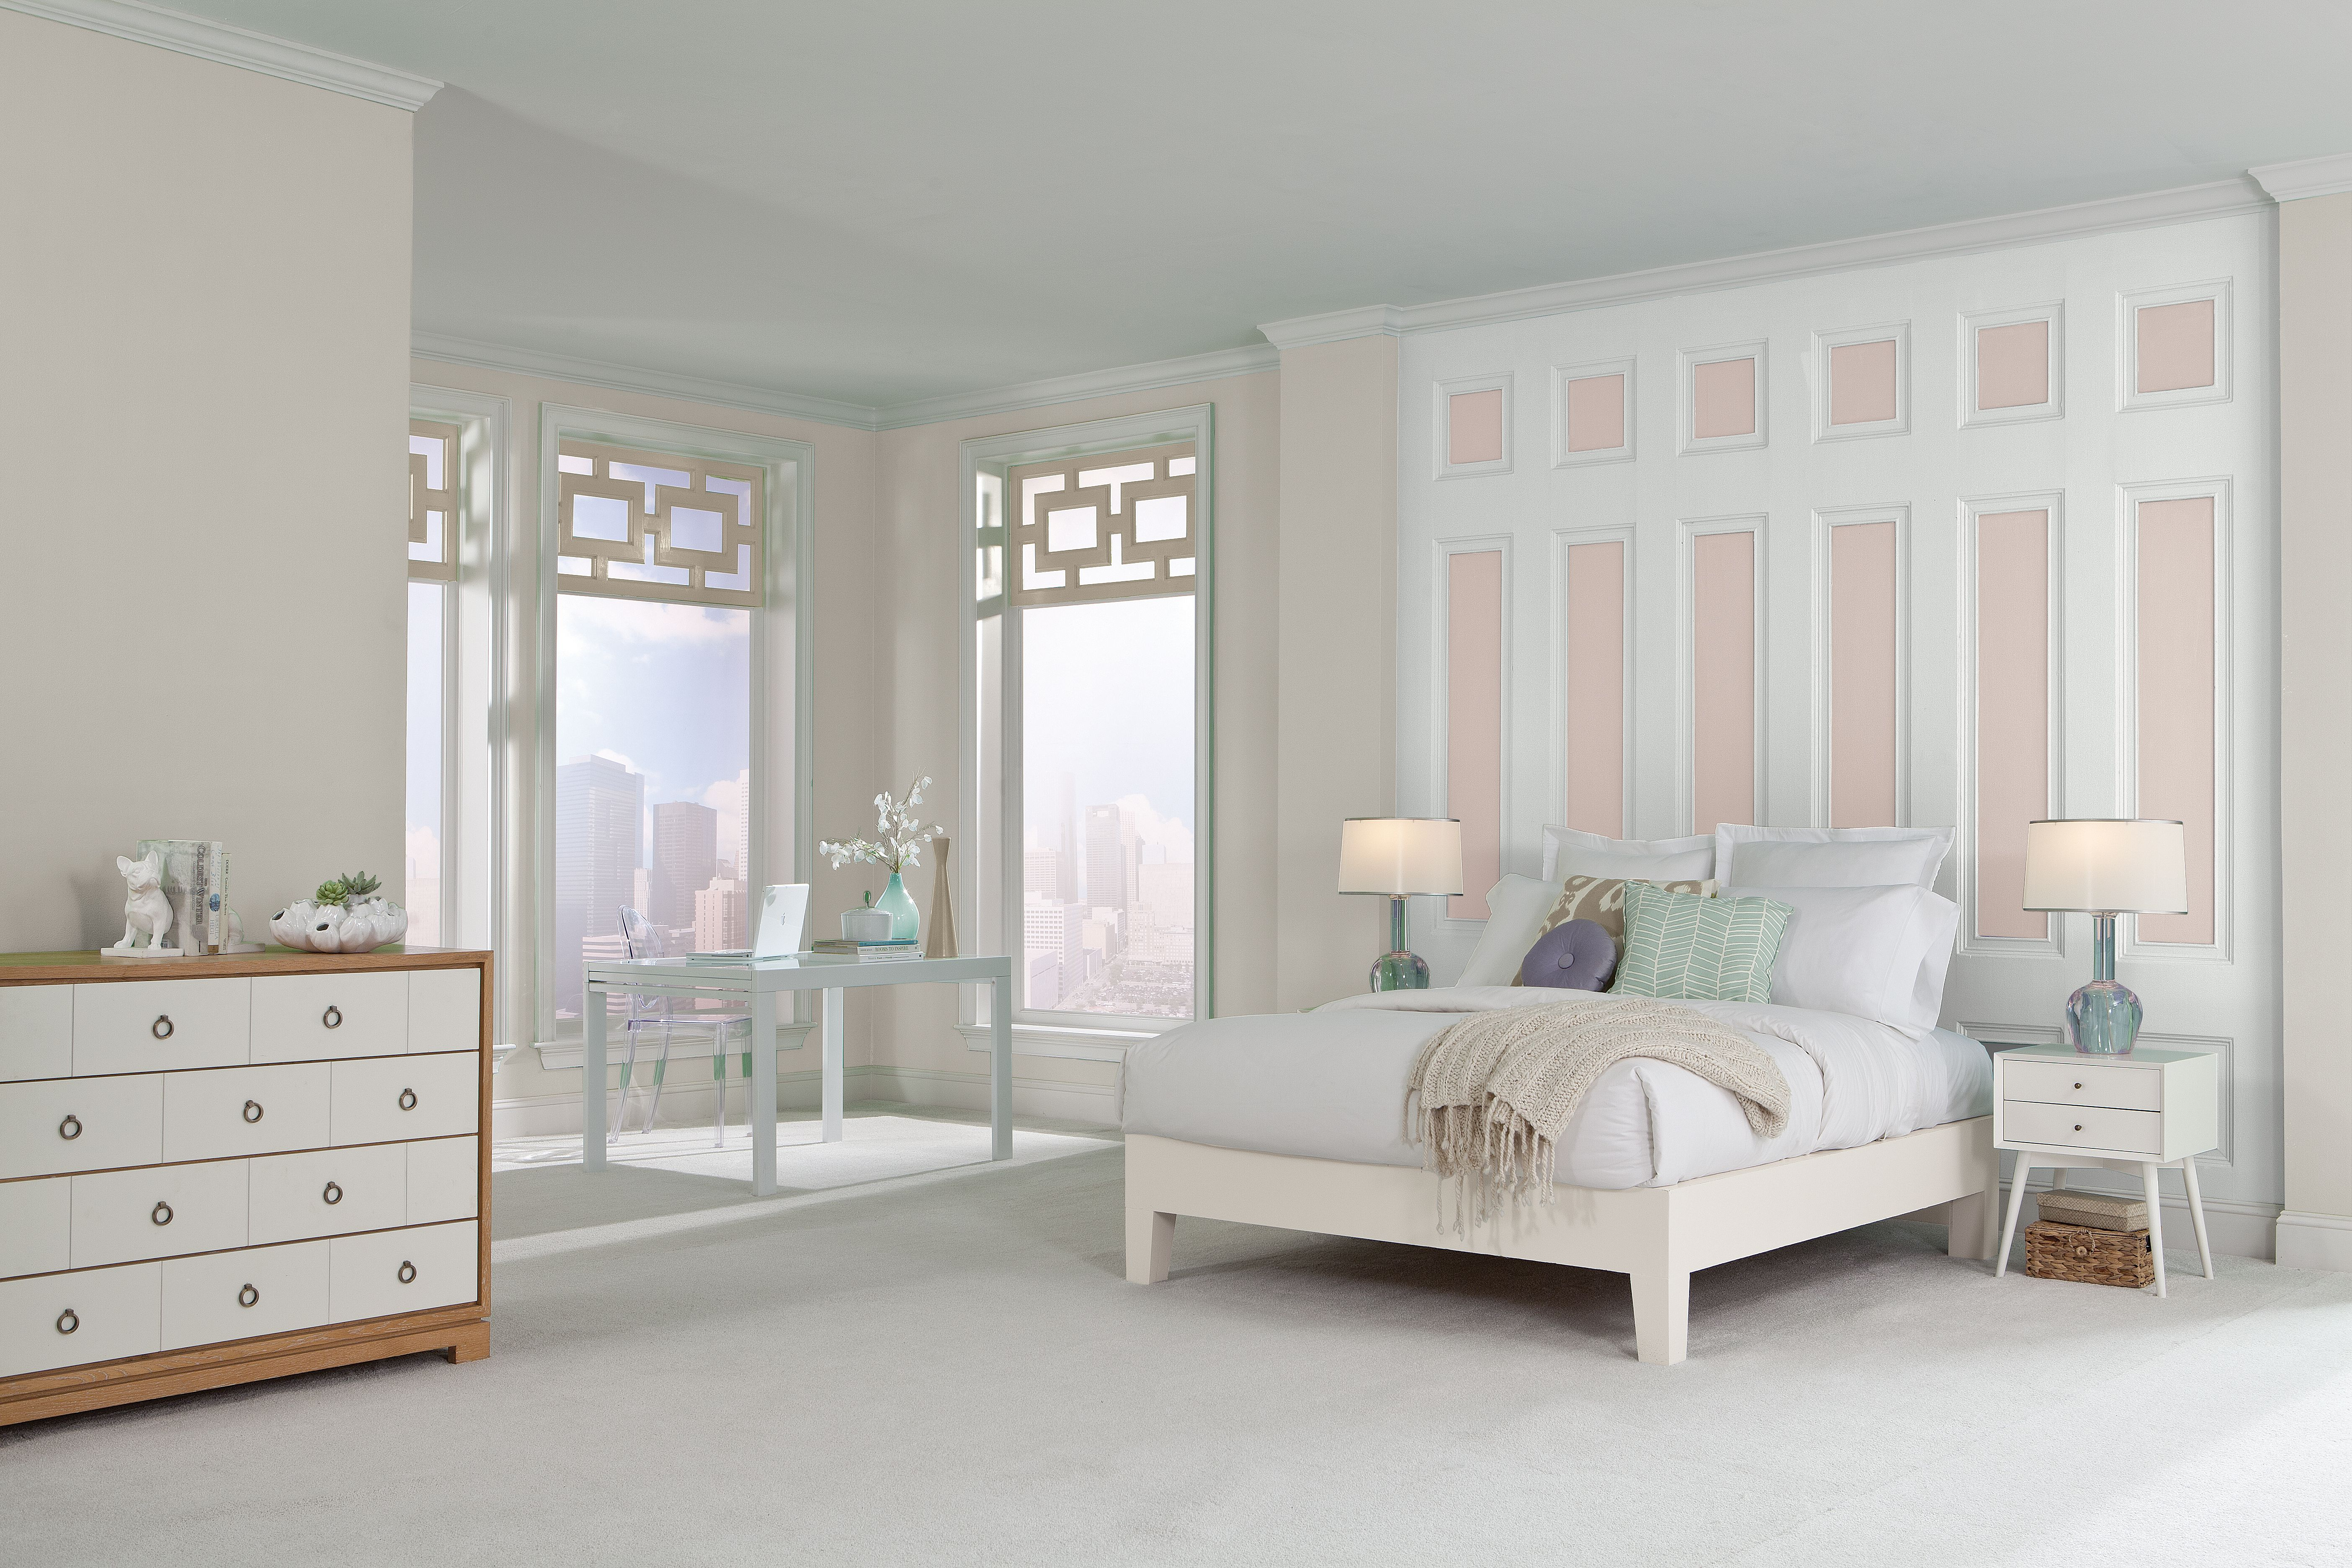 10 Beautiful Colors for a Little Girl's Room on Beautiful Room For Girls  id=31165